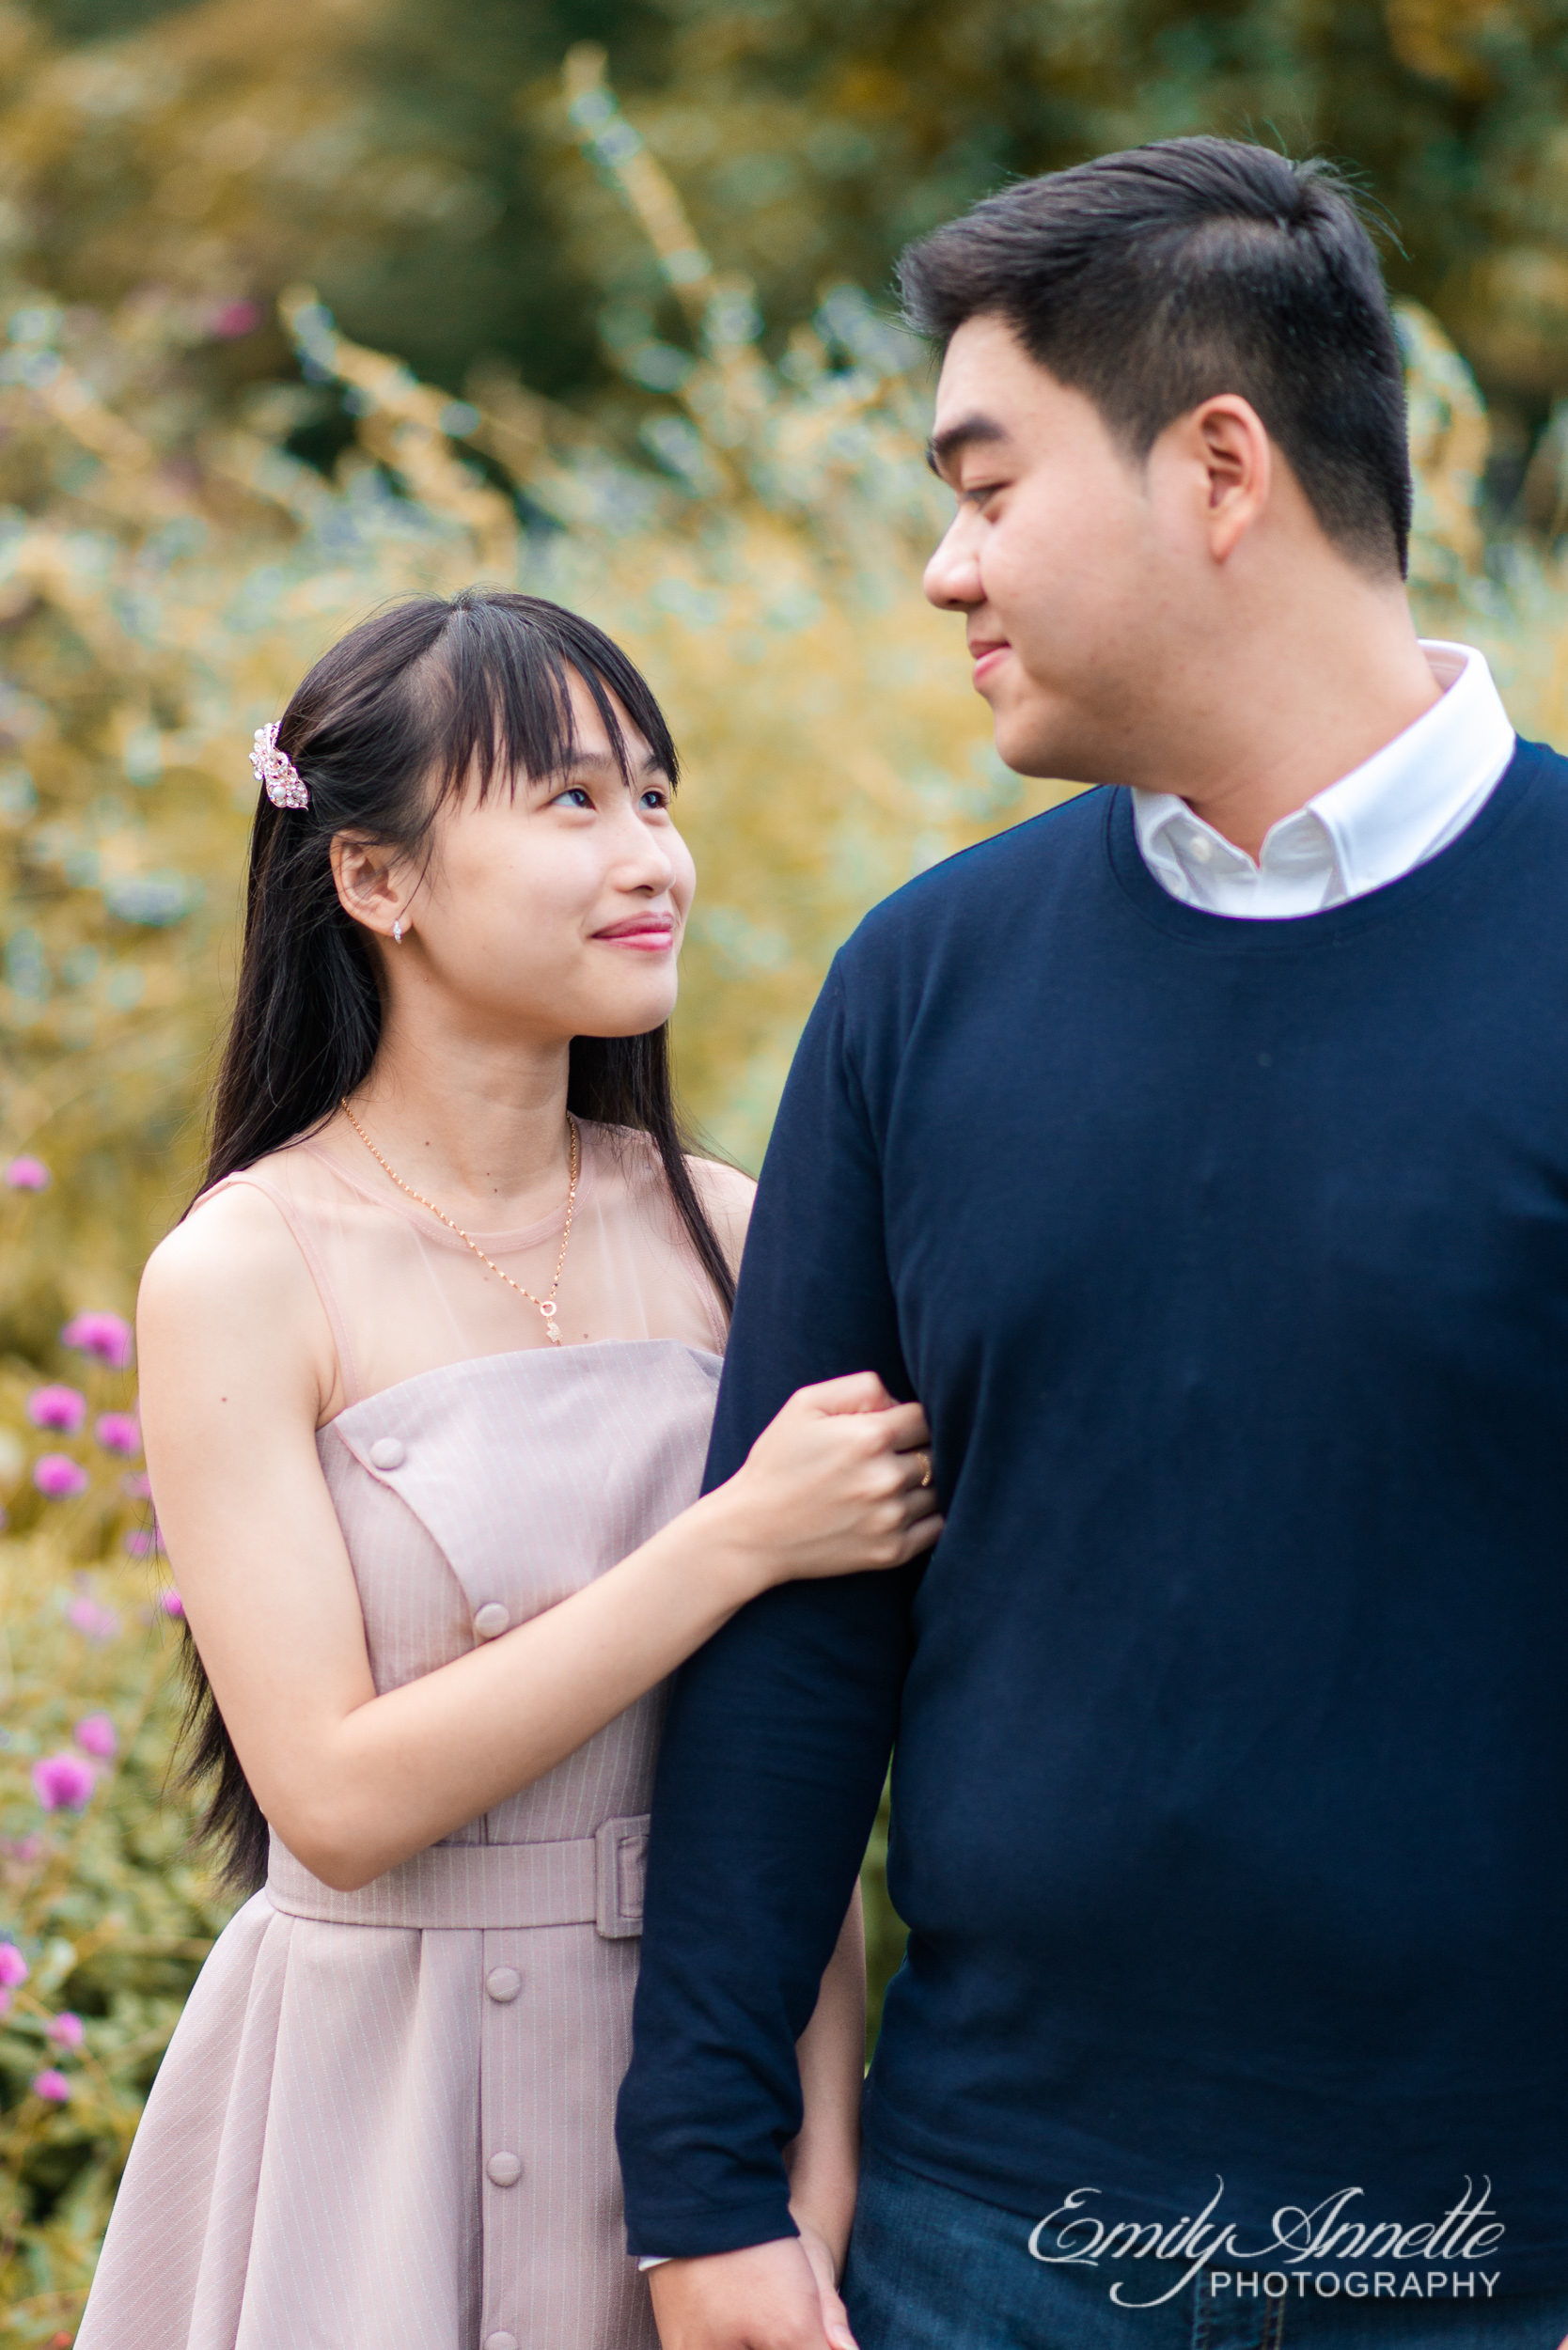 A young woman holds her boyfriend's arm and looks up at him in the garden at Green Spring Gardens Park in Fairfax, Virginia